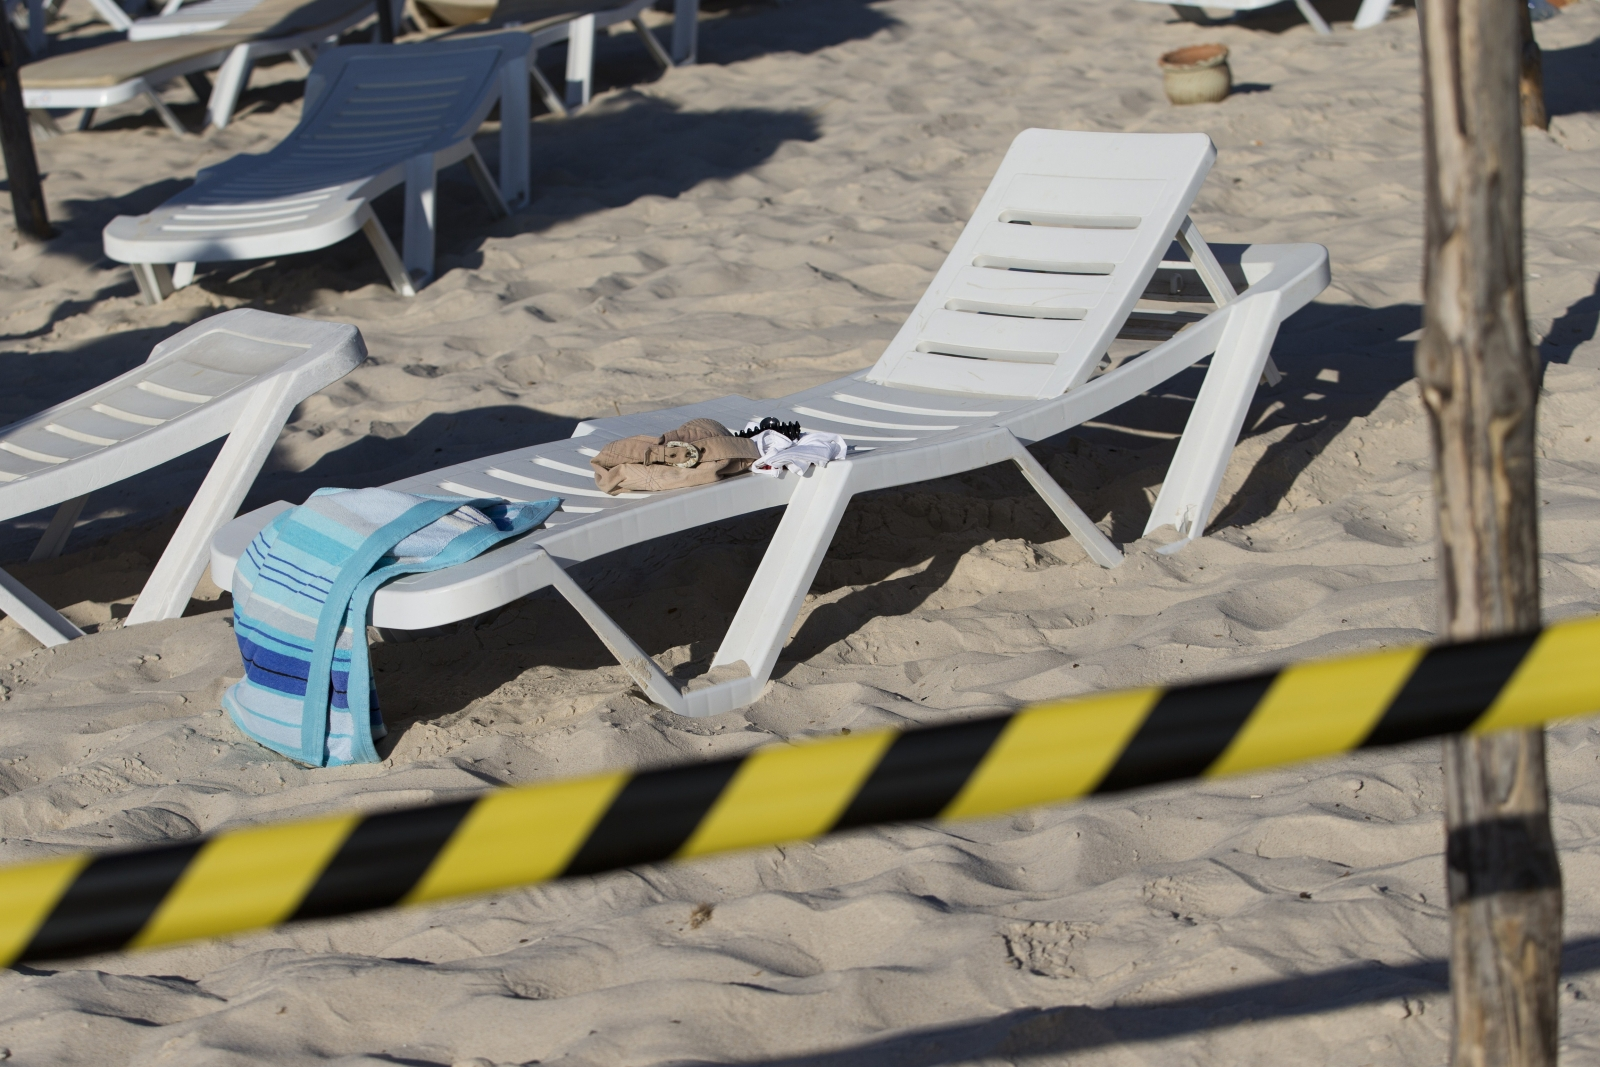 deserted belongings on deckchair